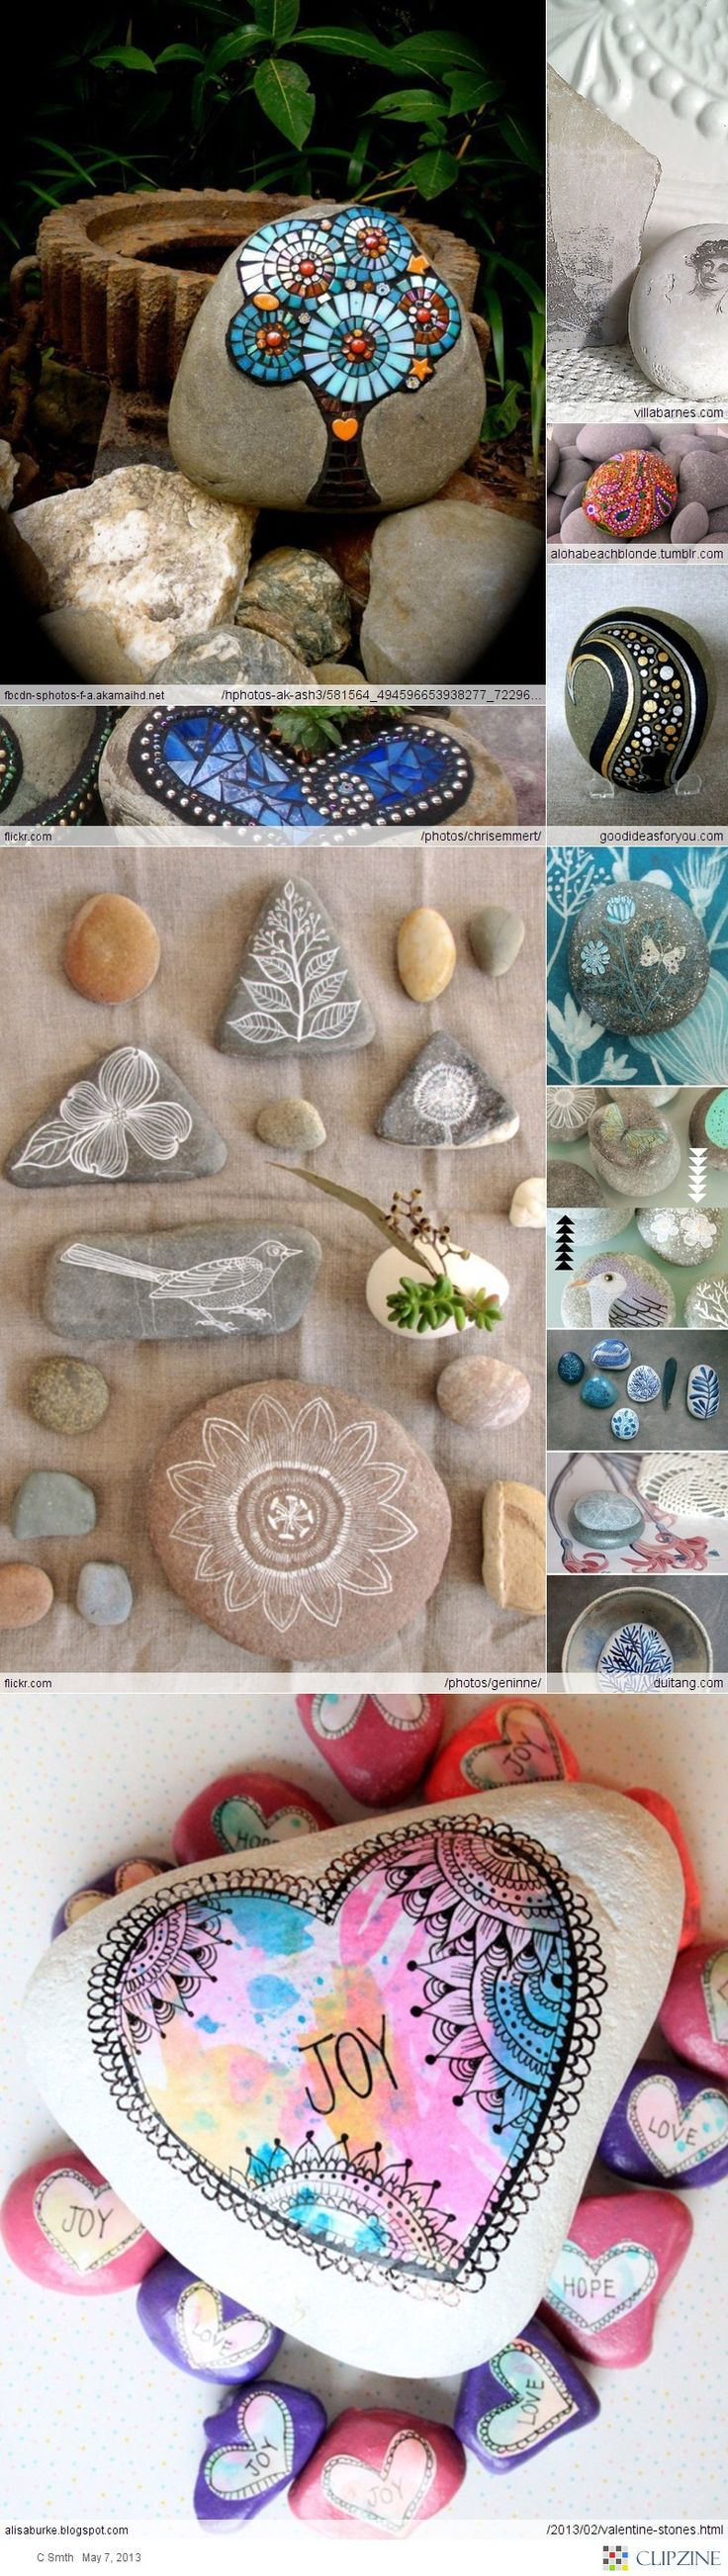 25 unique stone crafts ideas on pinterest river rock for River rock craft ideas